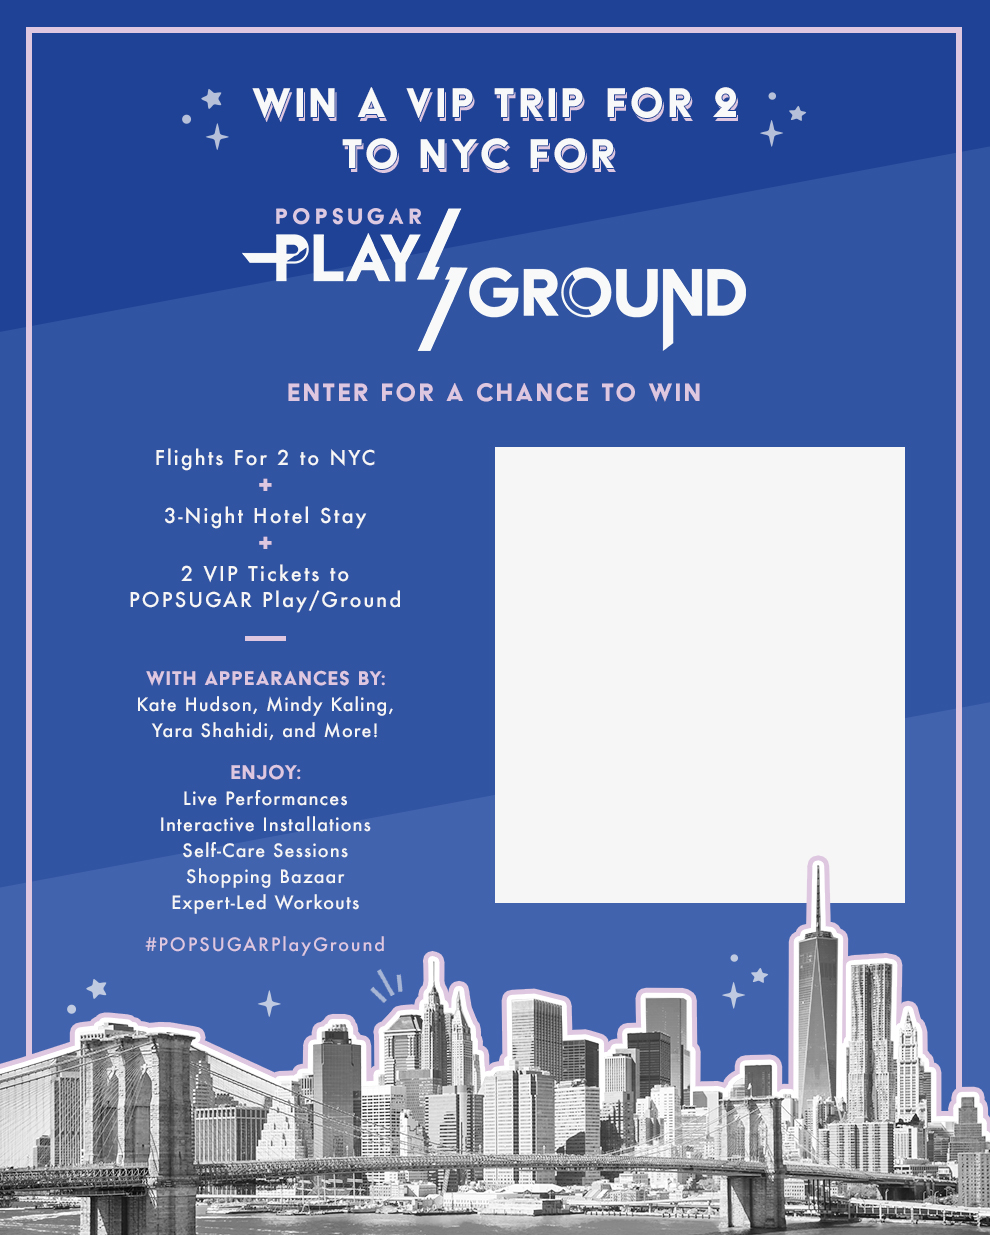 Win a trip to POPSUGAR Play/Ground in NYC